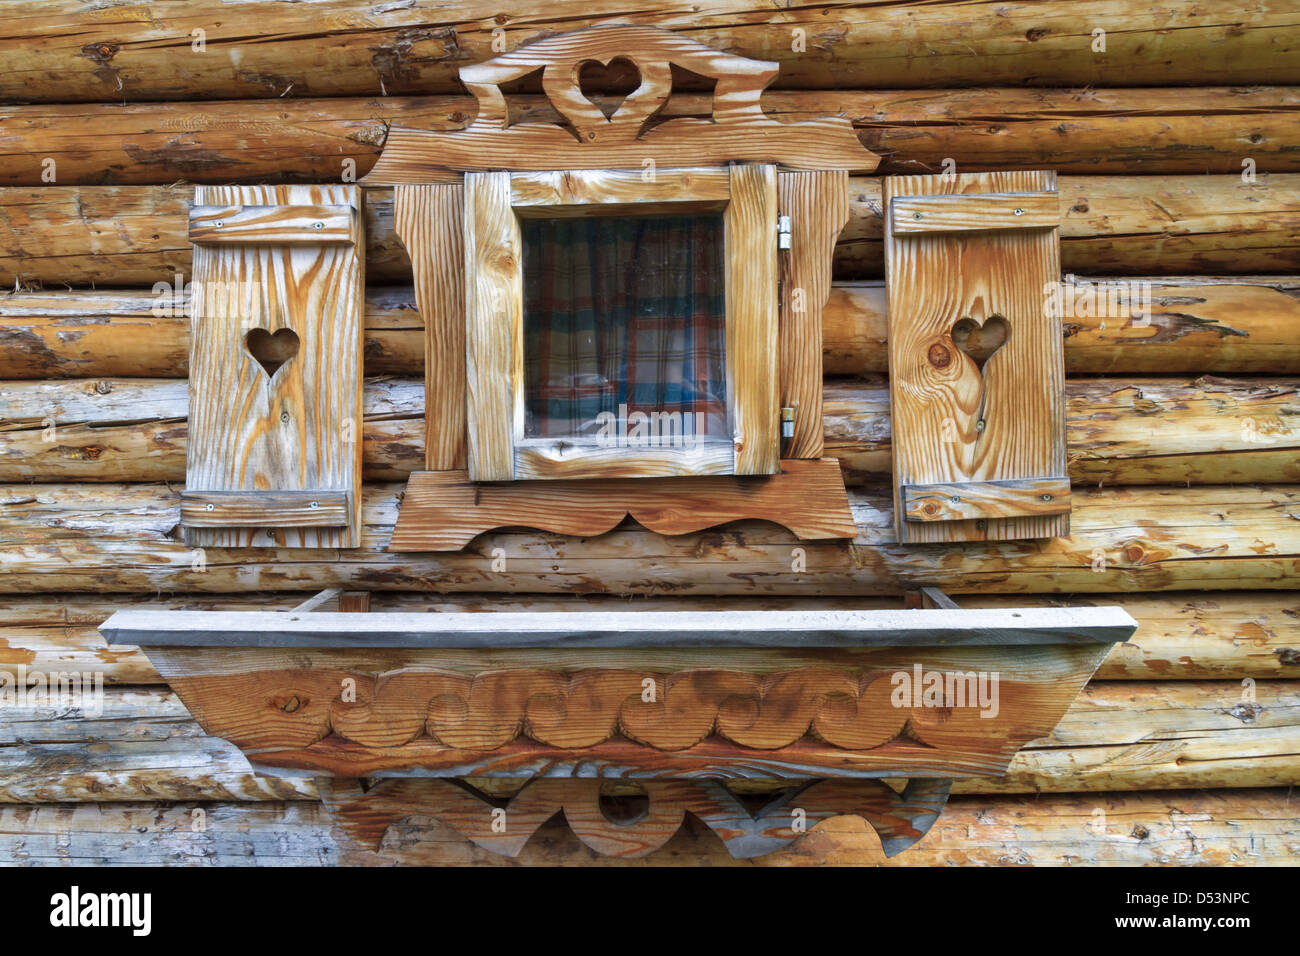 Window with heart shutters of a wooden log cabin in the European Alps - Stock Image